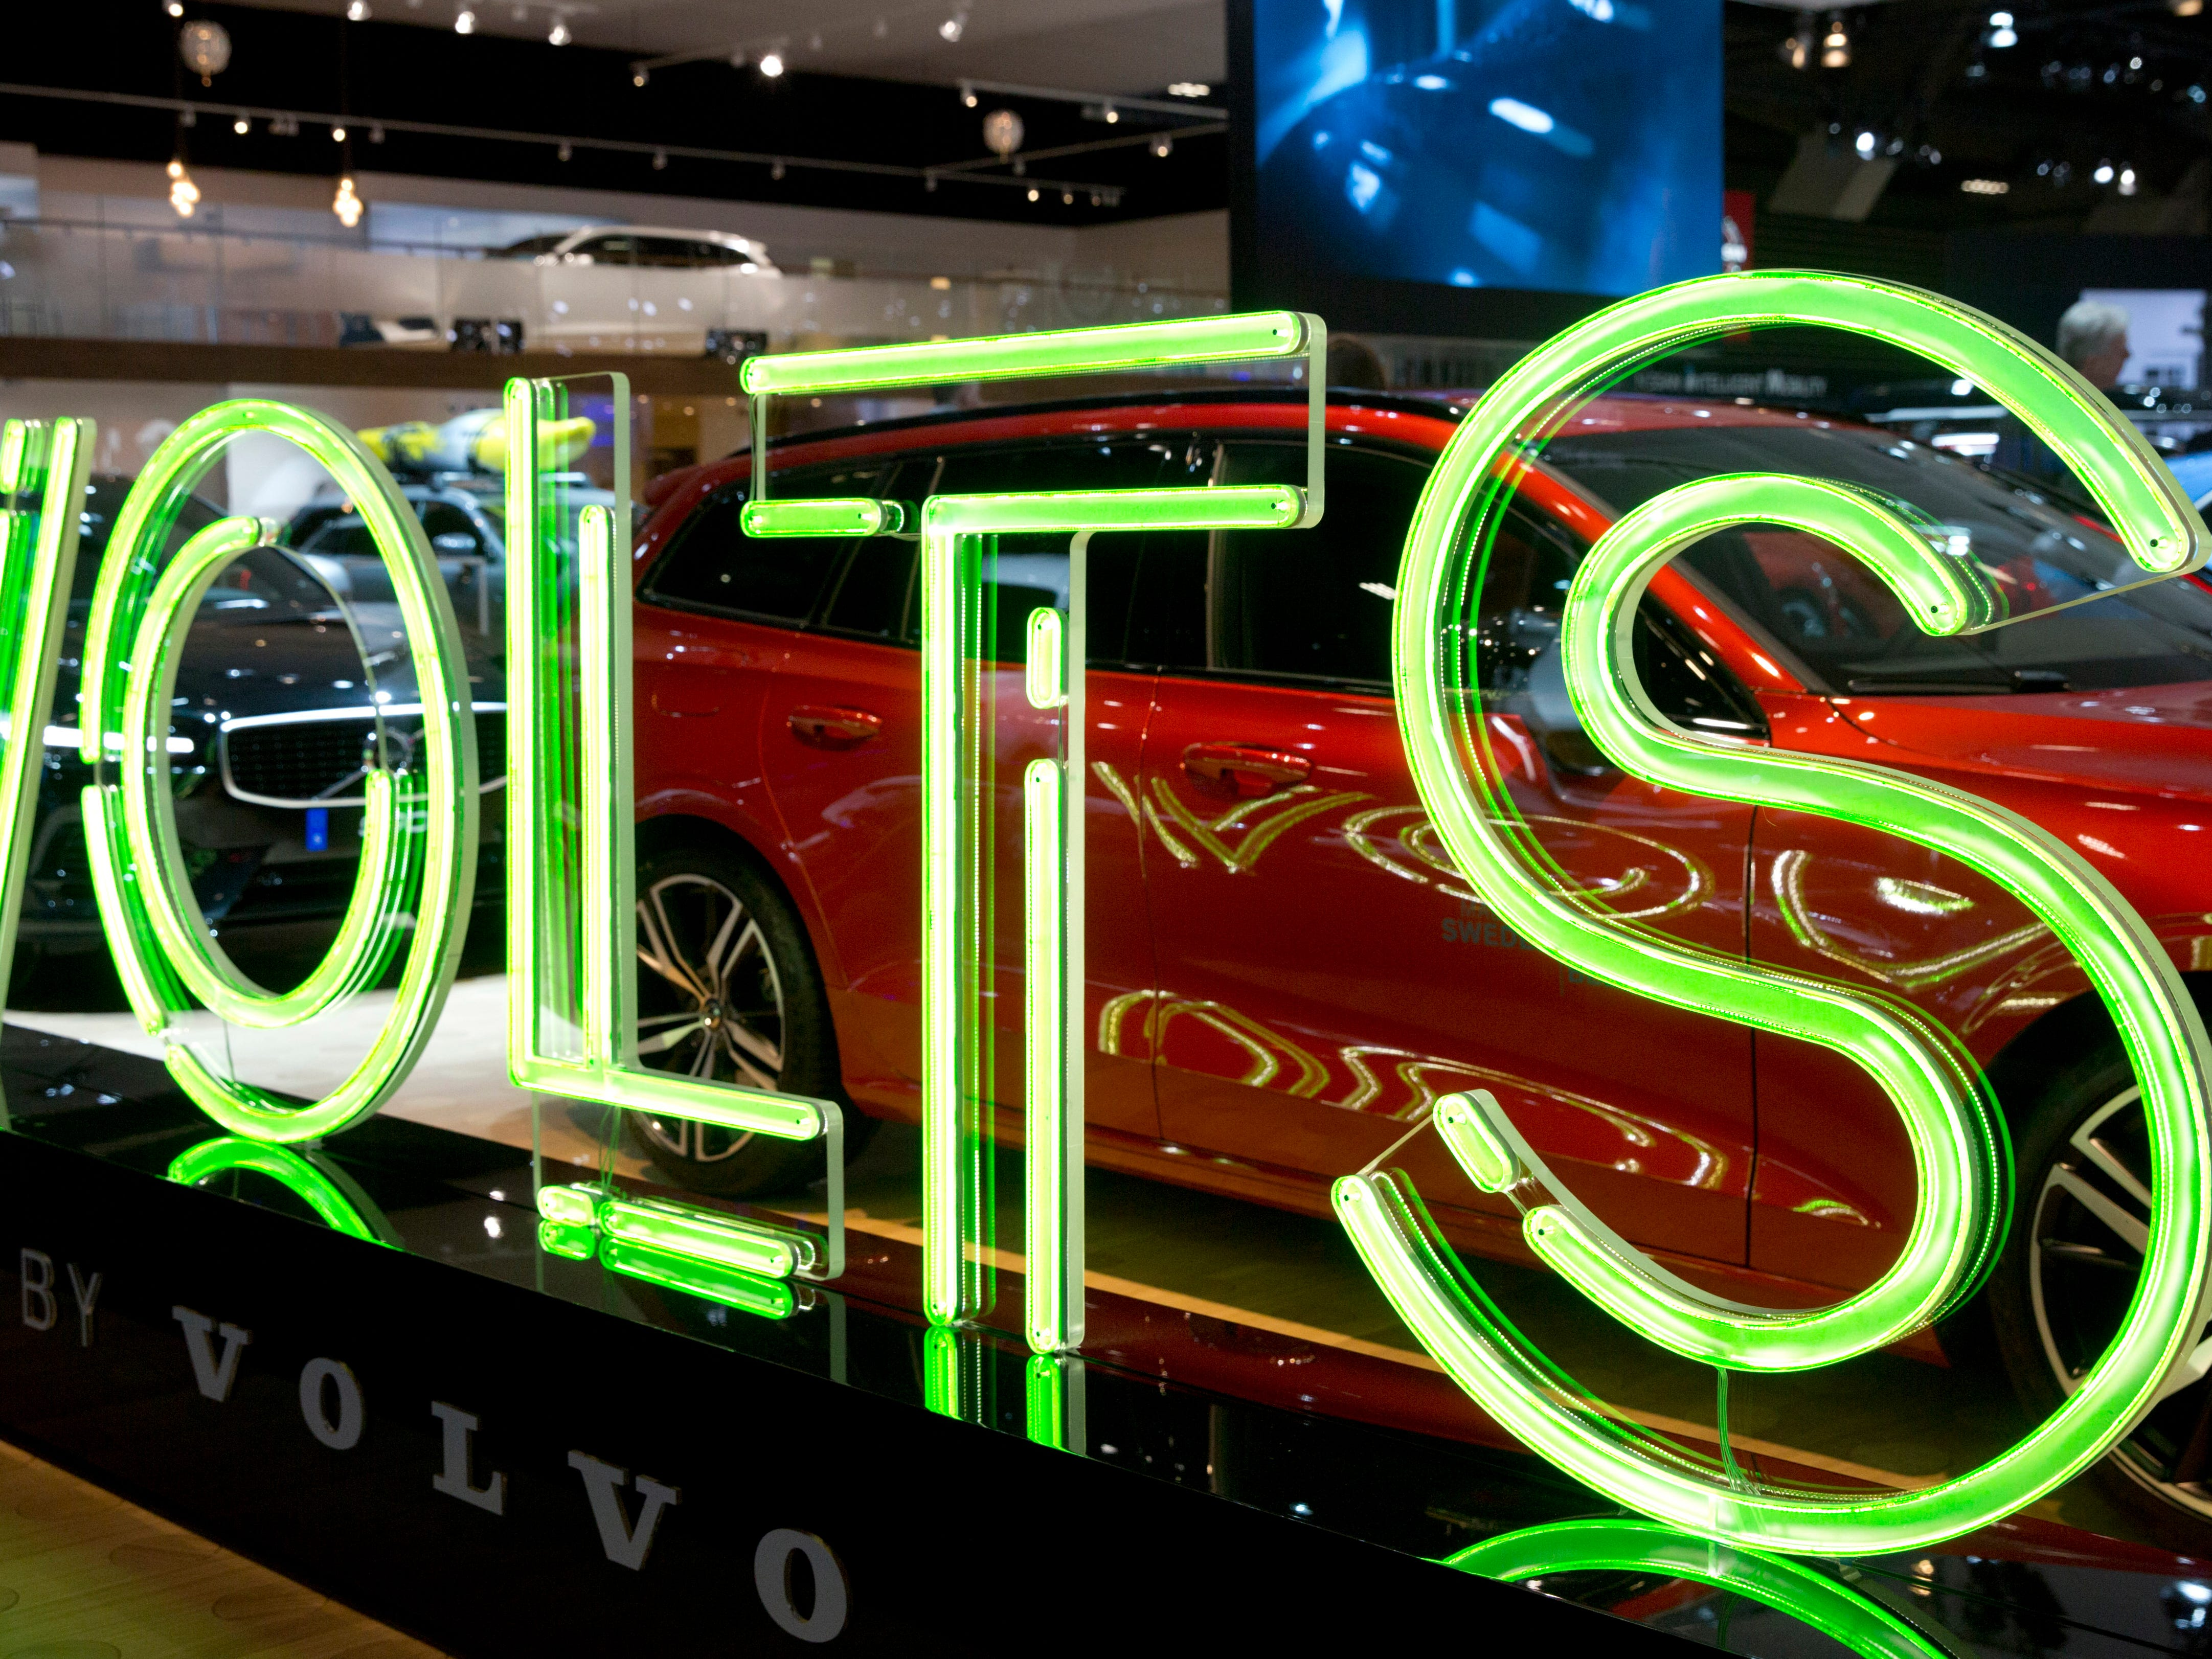 A neon sign which reads volts at the Volvo car stand.